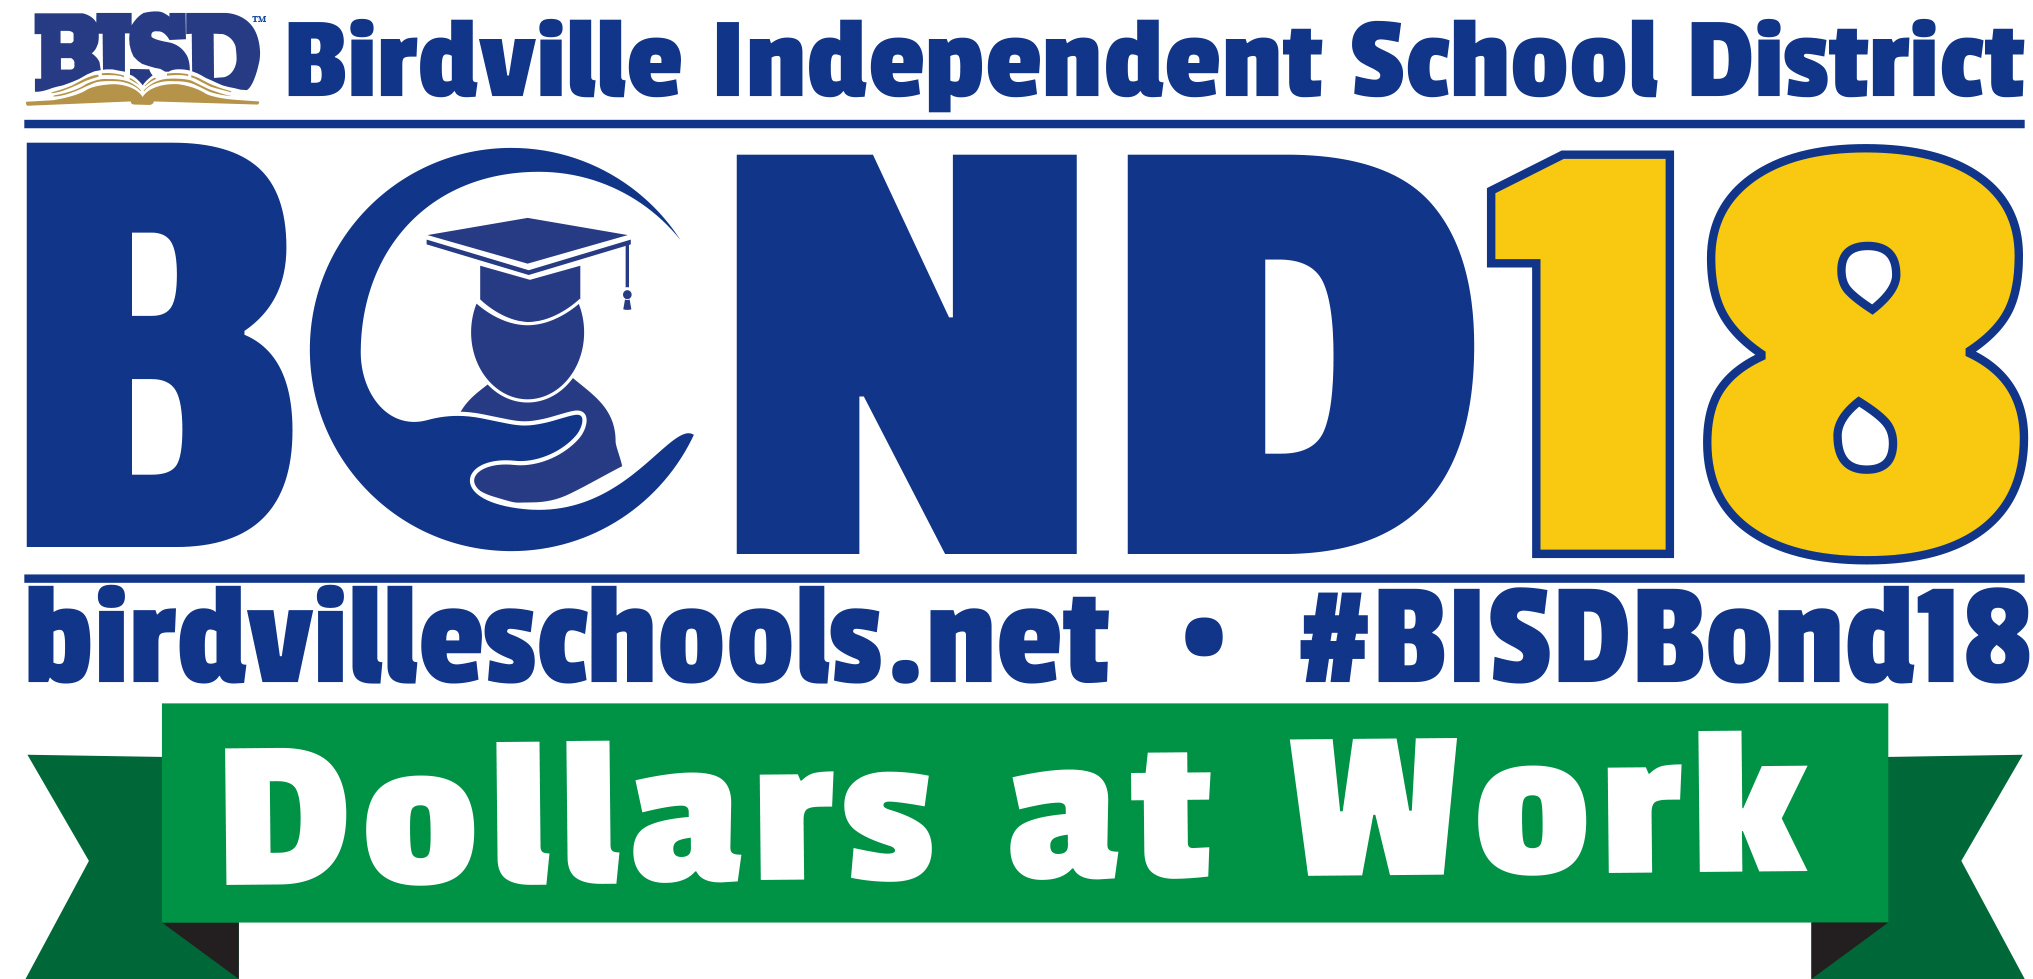 Birdville ISD Bond 18 birdvilleschools.net/#BISDbond18/Dollars at work